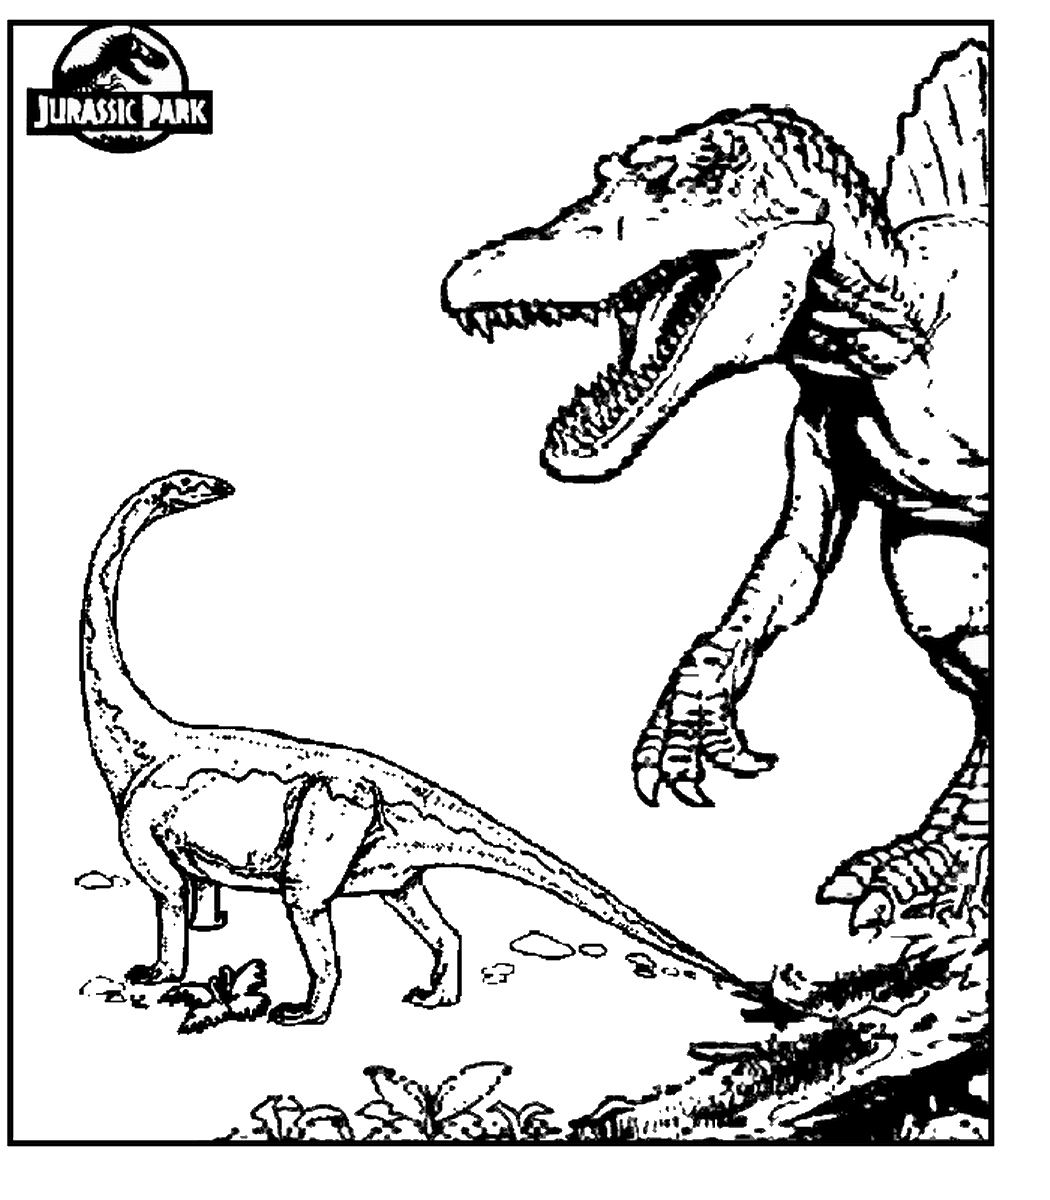 Jurassic Park 3 Coloring Pages